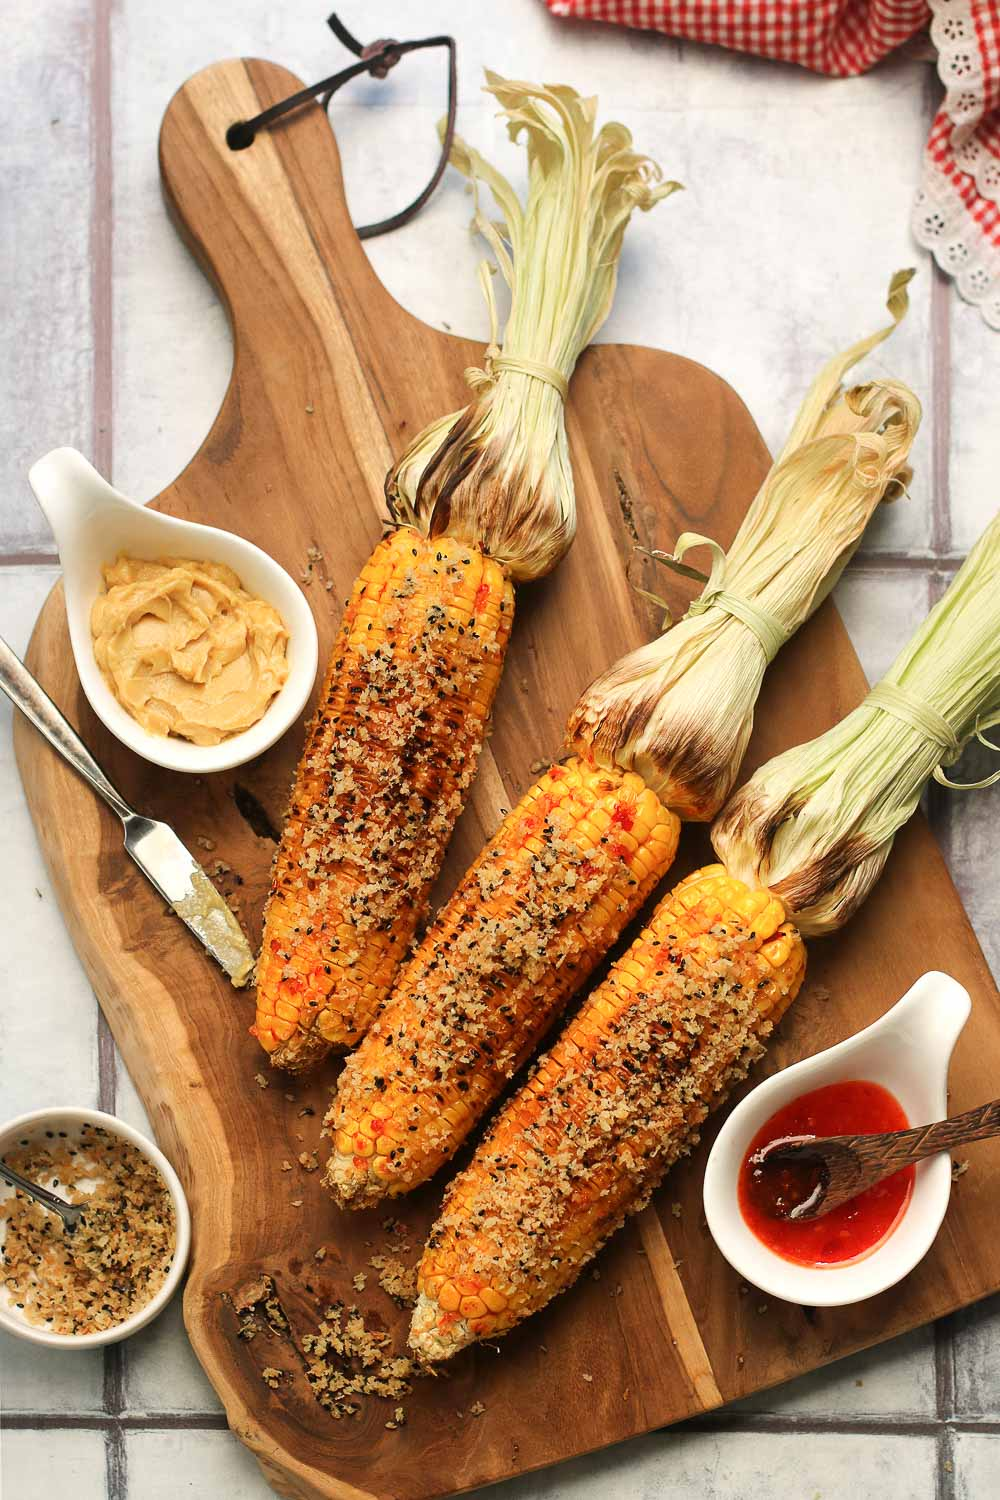 This grilled corn with spicy miso takes grilled corn to the next level and is one you'll be making on repeat! It's full of flavor, easy to make, and the perfect blend of spicy, savory, and umami. Perfect when paired with grilled chicken skewers or grilled mussels.